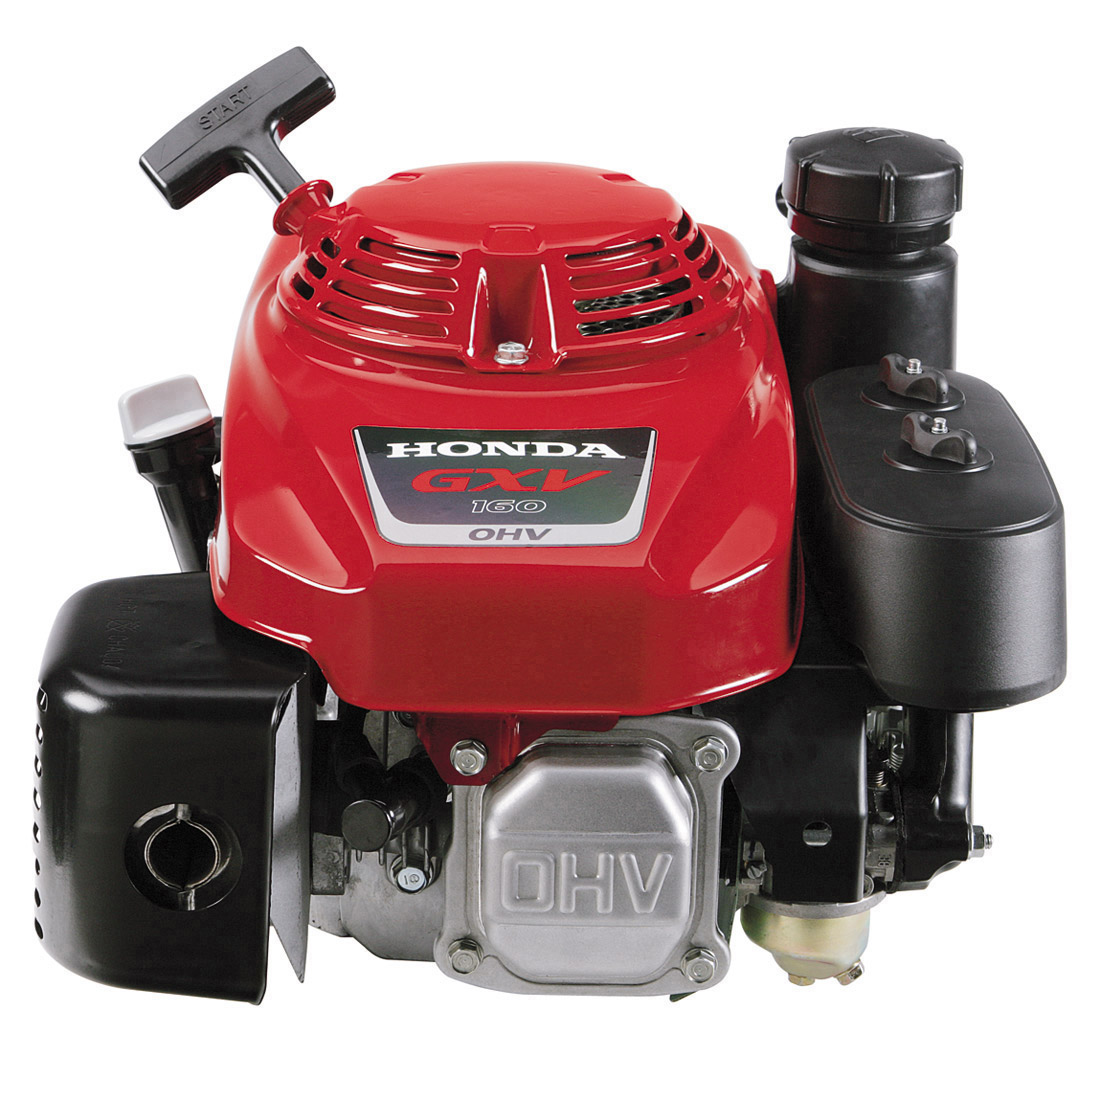 Honda Engines | GXV160 4-Stroke Engine | Features, Specs, and Model